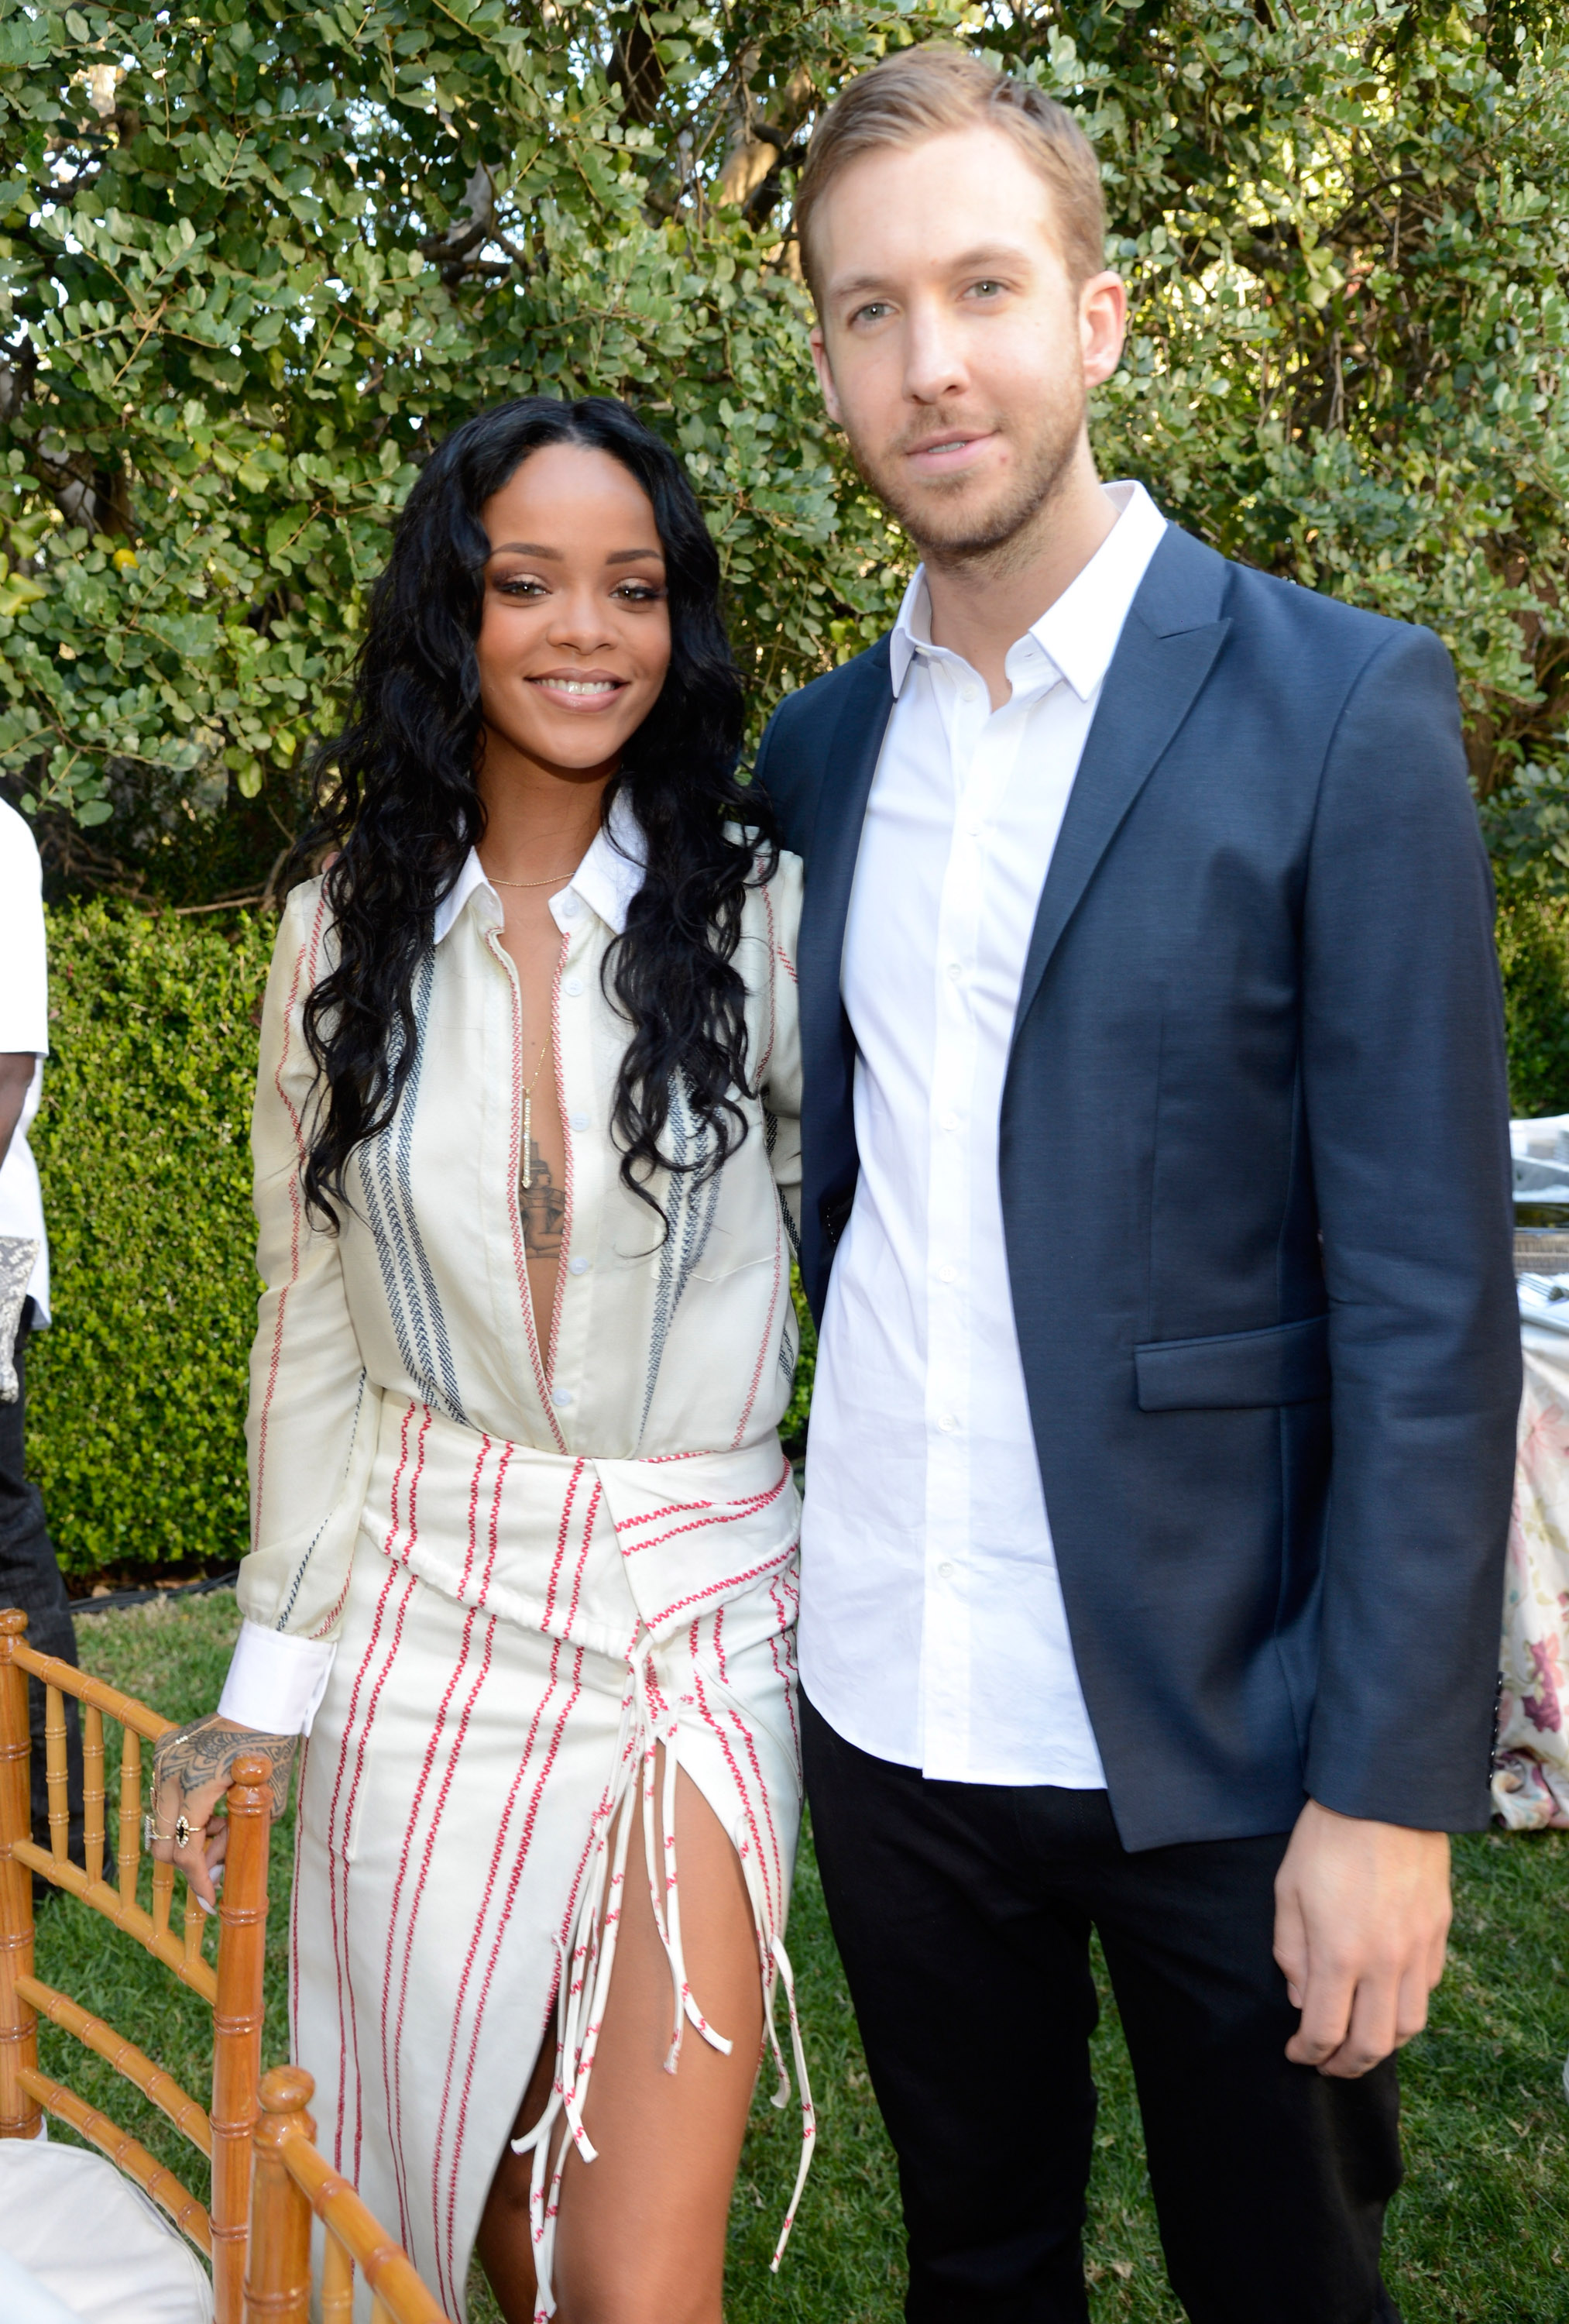 Calvin-Harris-To-Perform-At-Rihannas-Diamond-Ball